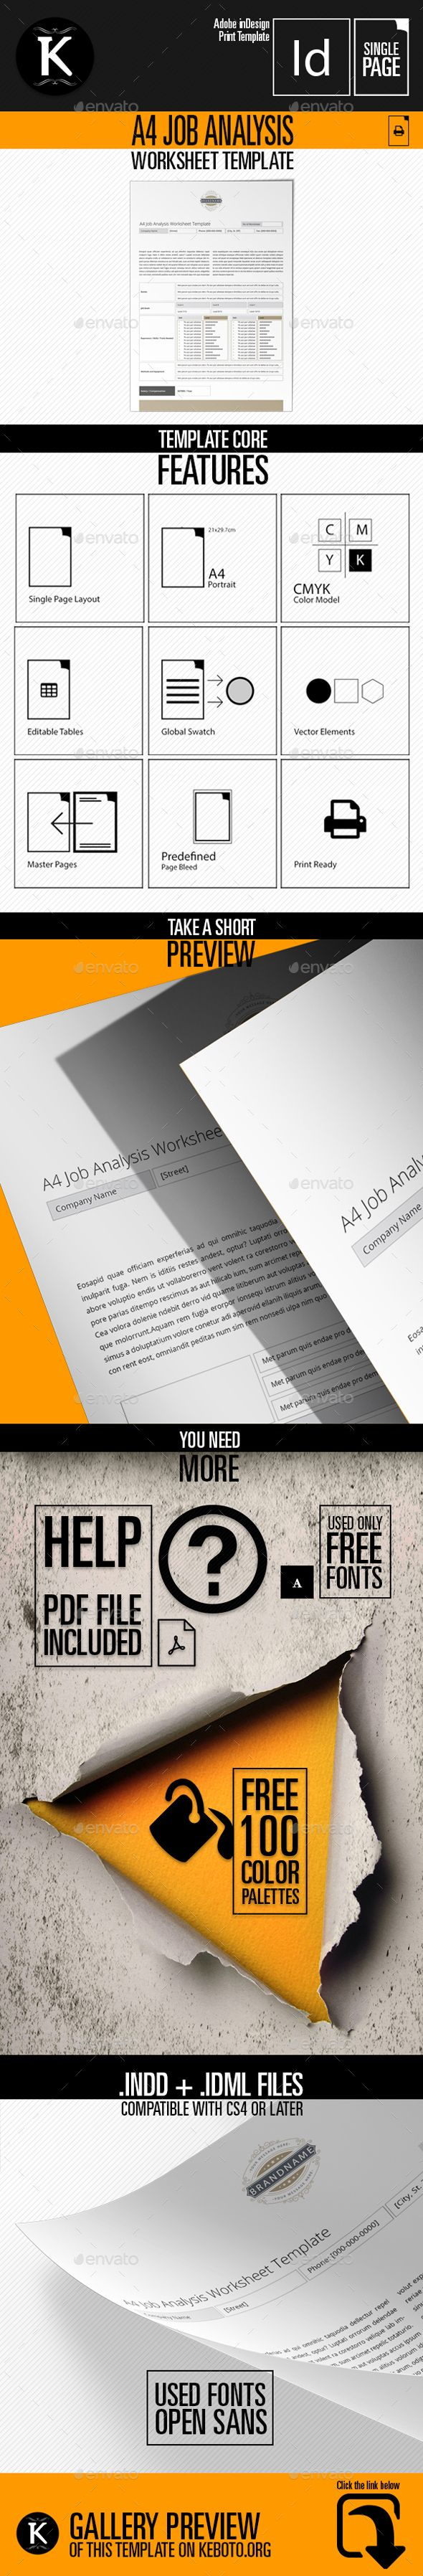 A4 Job Analysis Worksheet Template CMYK & Print Ready Clean and Corporate Design A4 Format Easily color change (Global Swatch)Cont